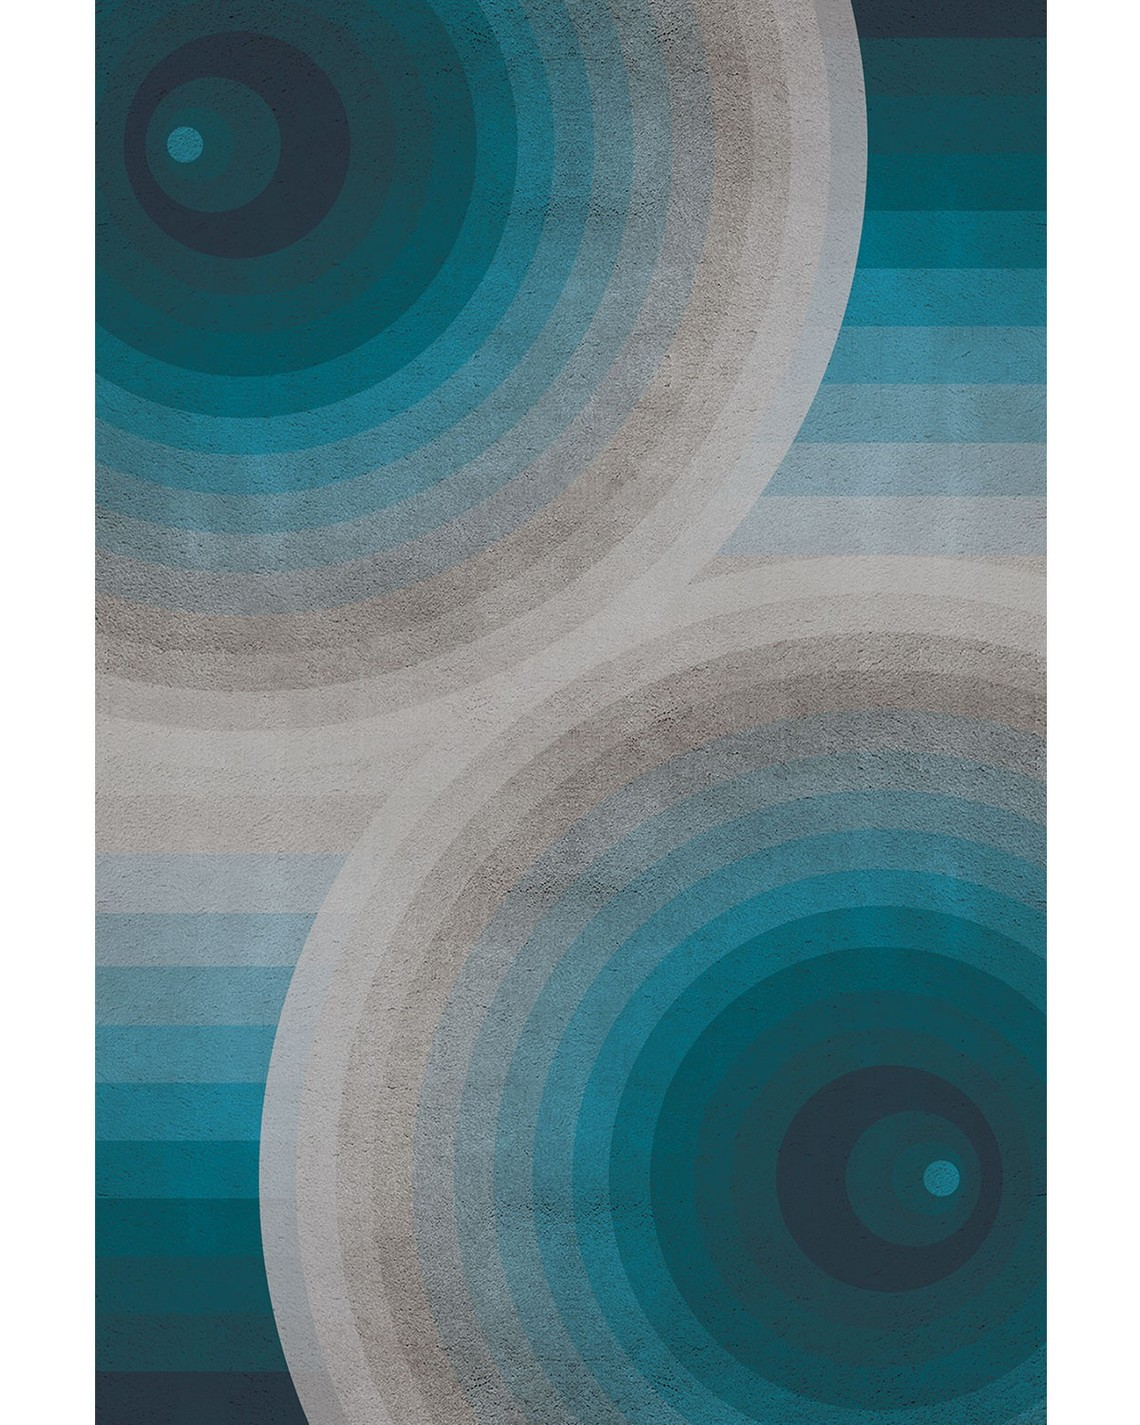 7 Colorful Dining Room Rugs You Will Covet dining room rugs 7 Colorful Dining Room Rugs You Will Covet pluto